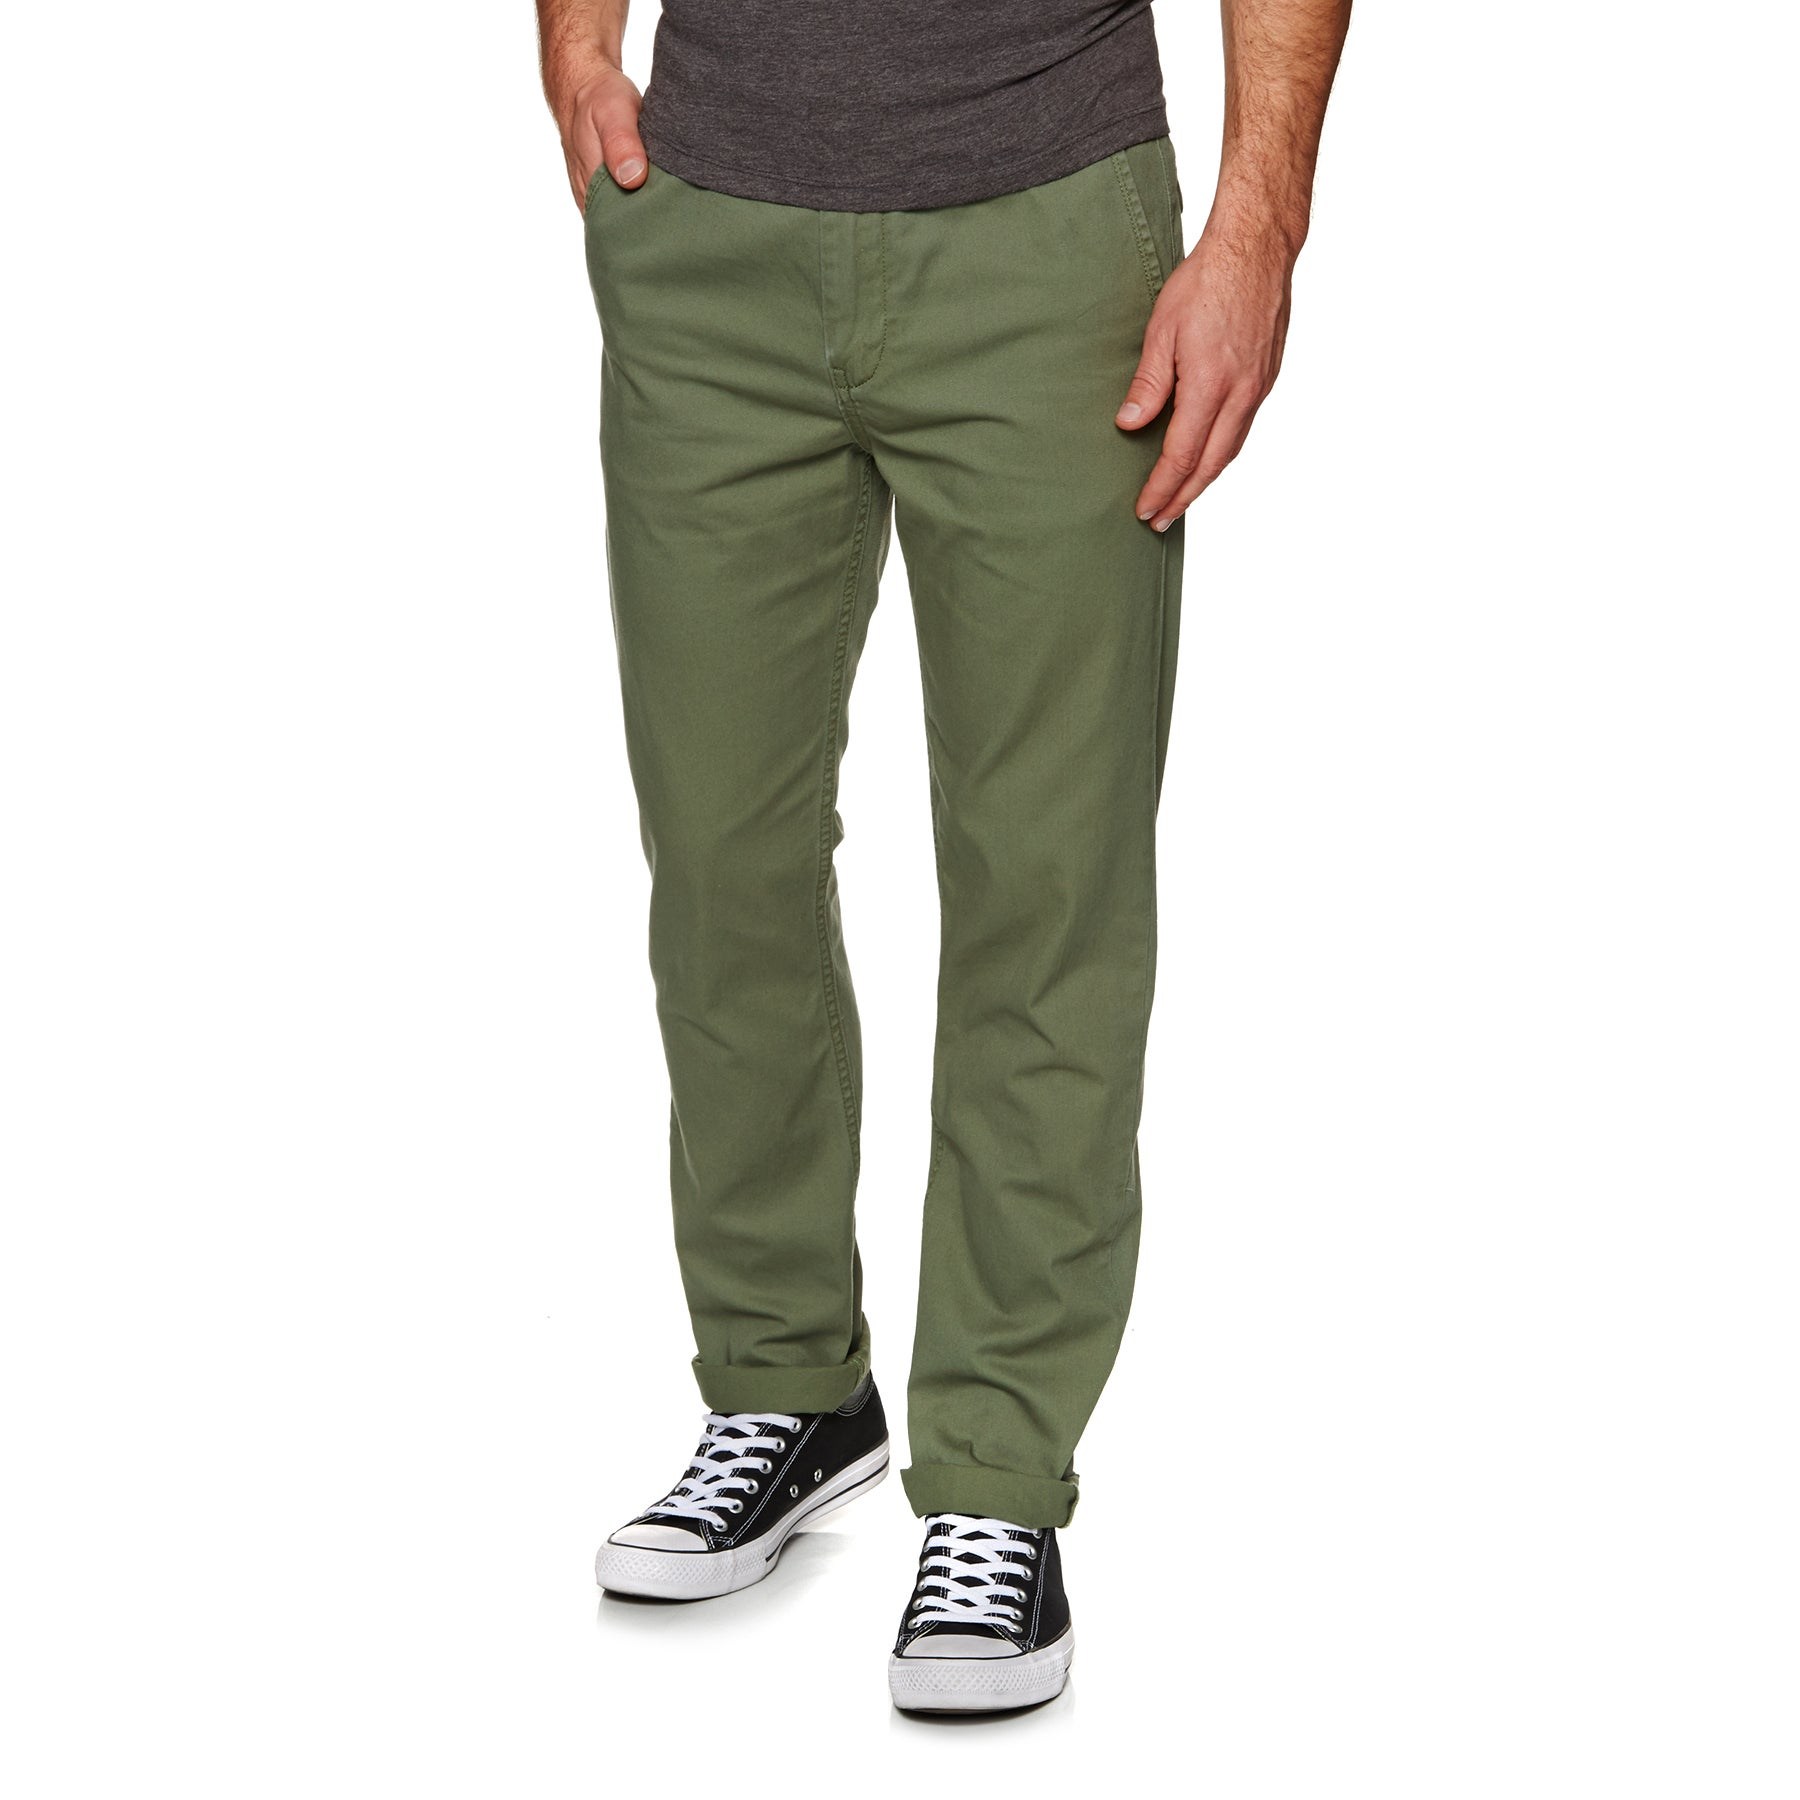 Quiksilver Everyday Light Chino Pant - Four Leaf Clover